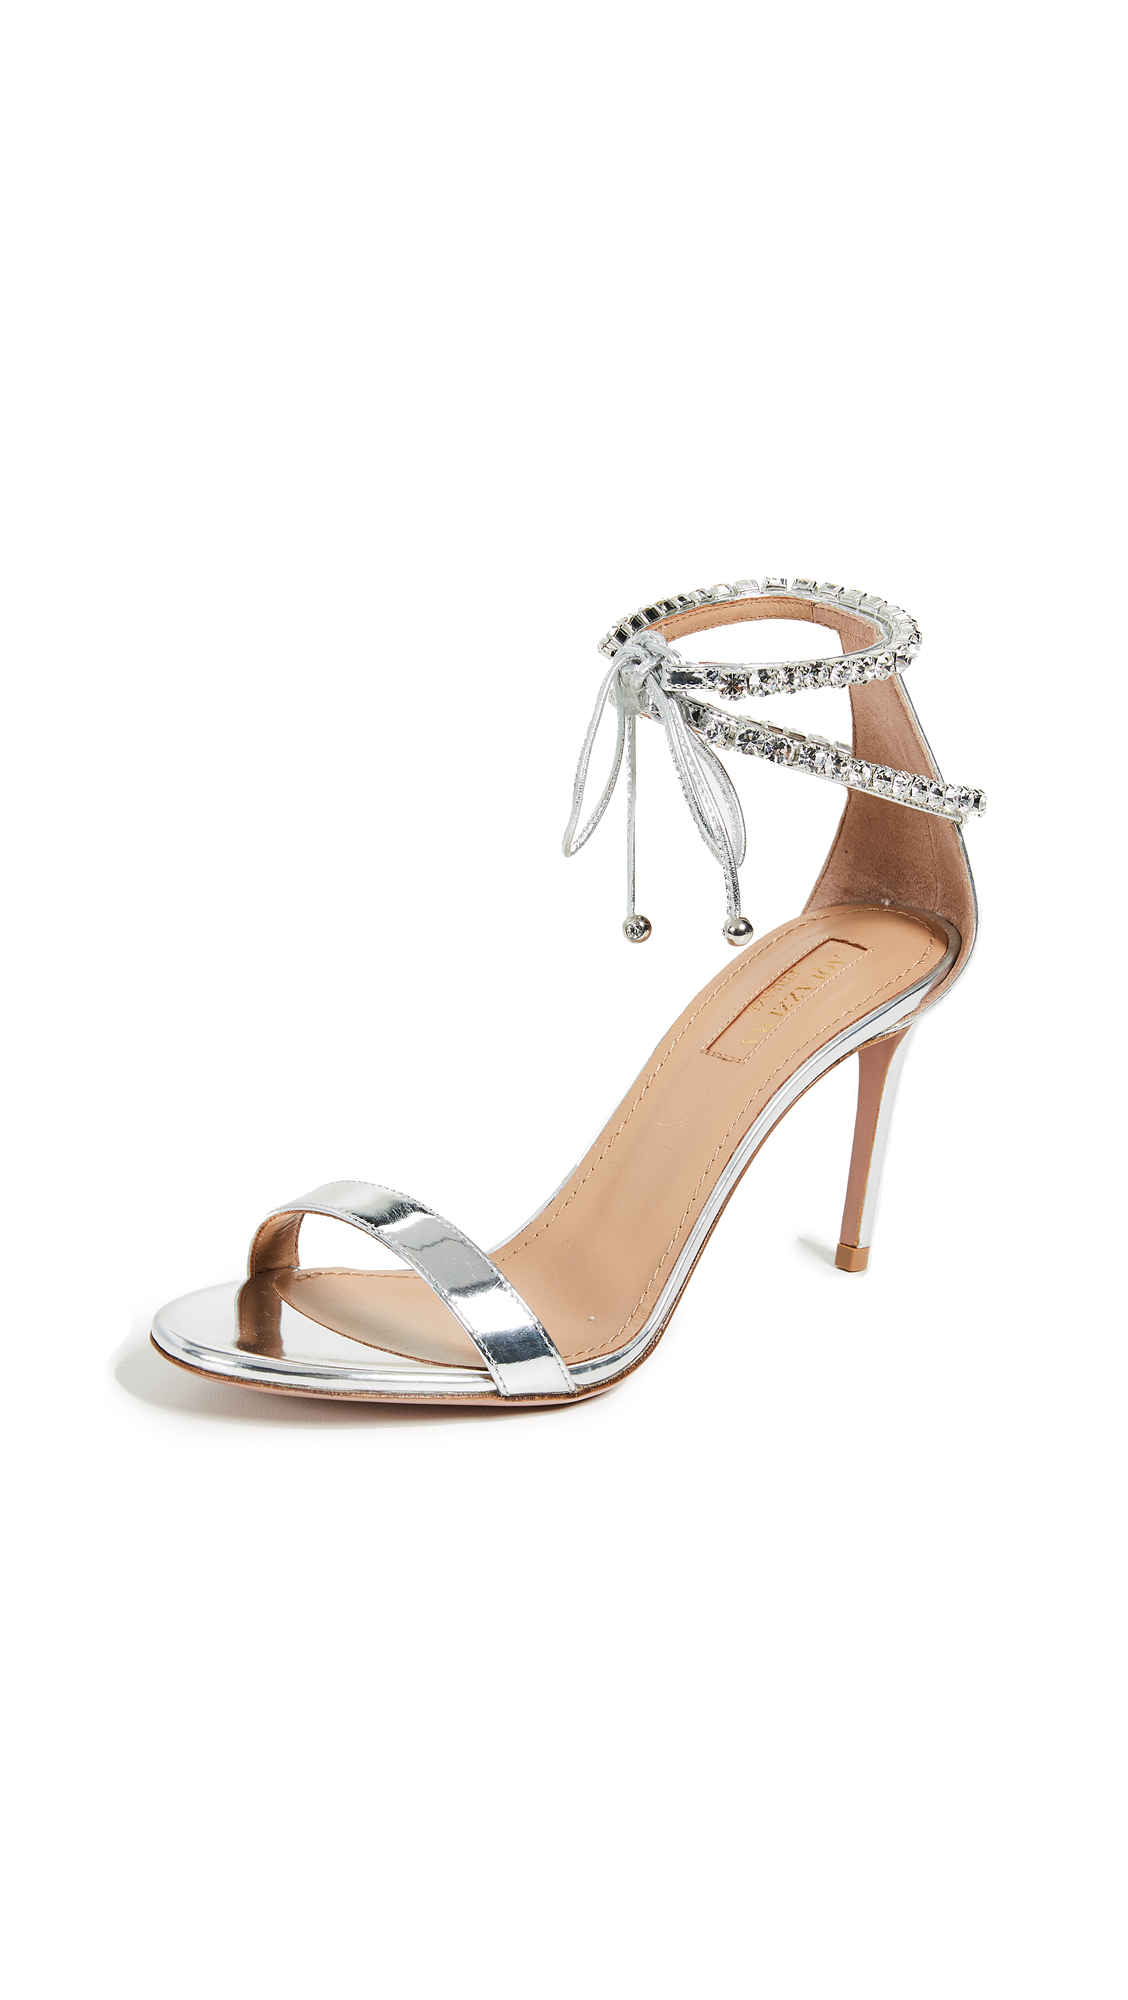 Aquazzura Crillon 85 Sandals - Argento